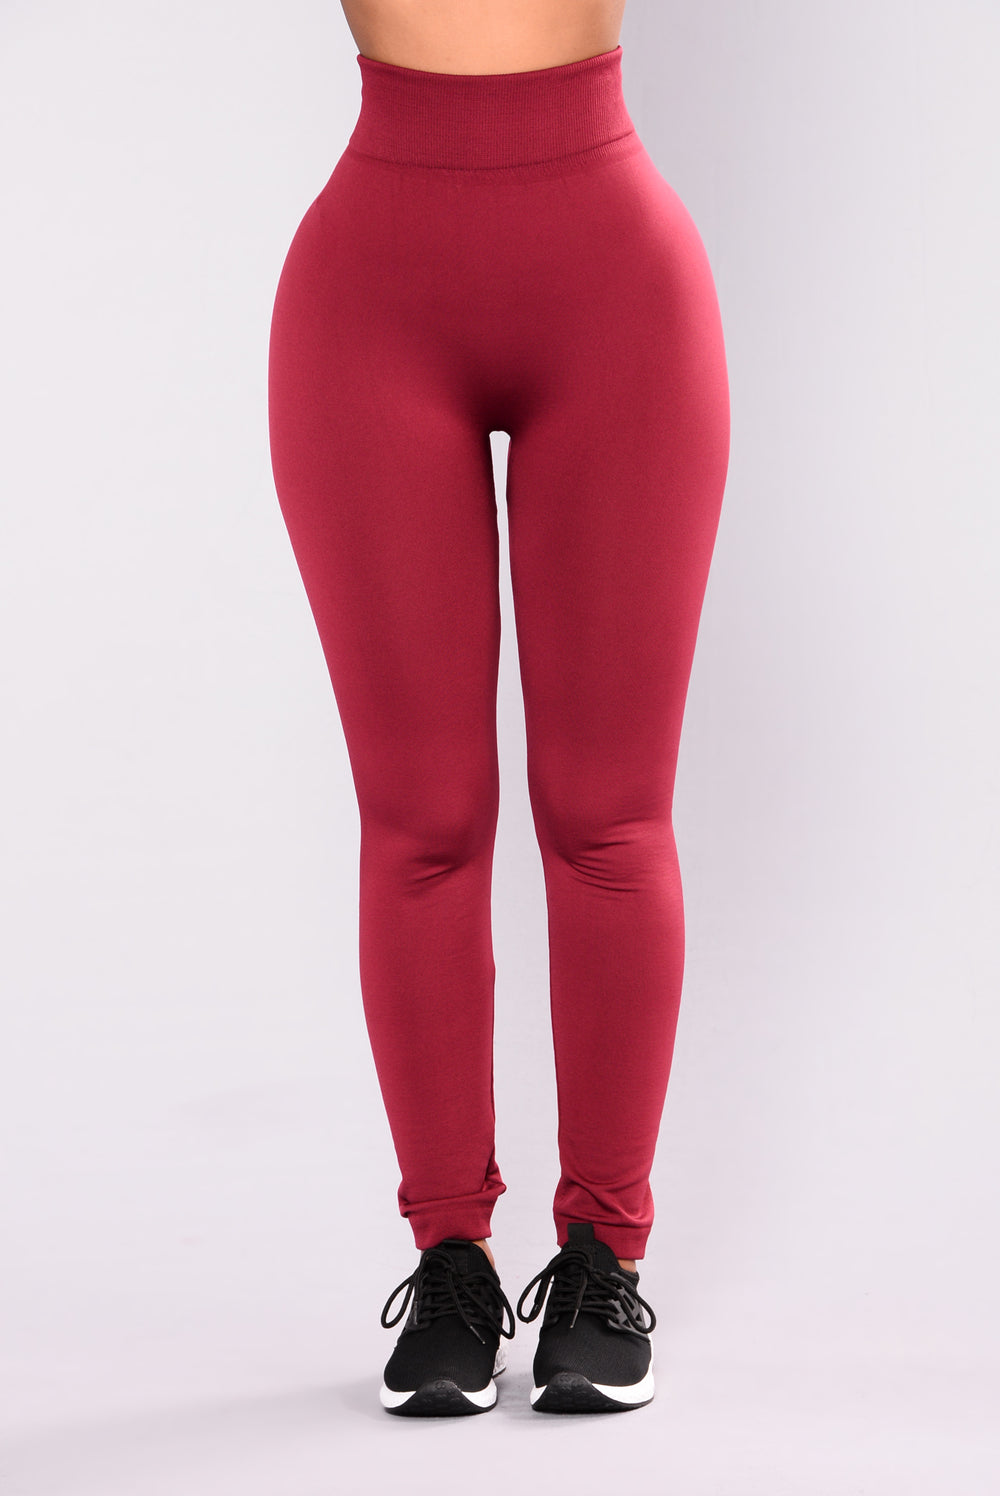 Yes Fleece II Leggings - Burgundy